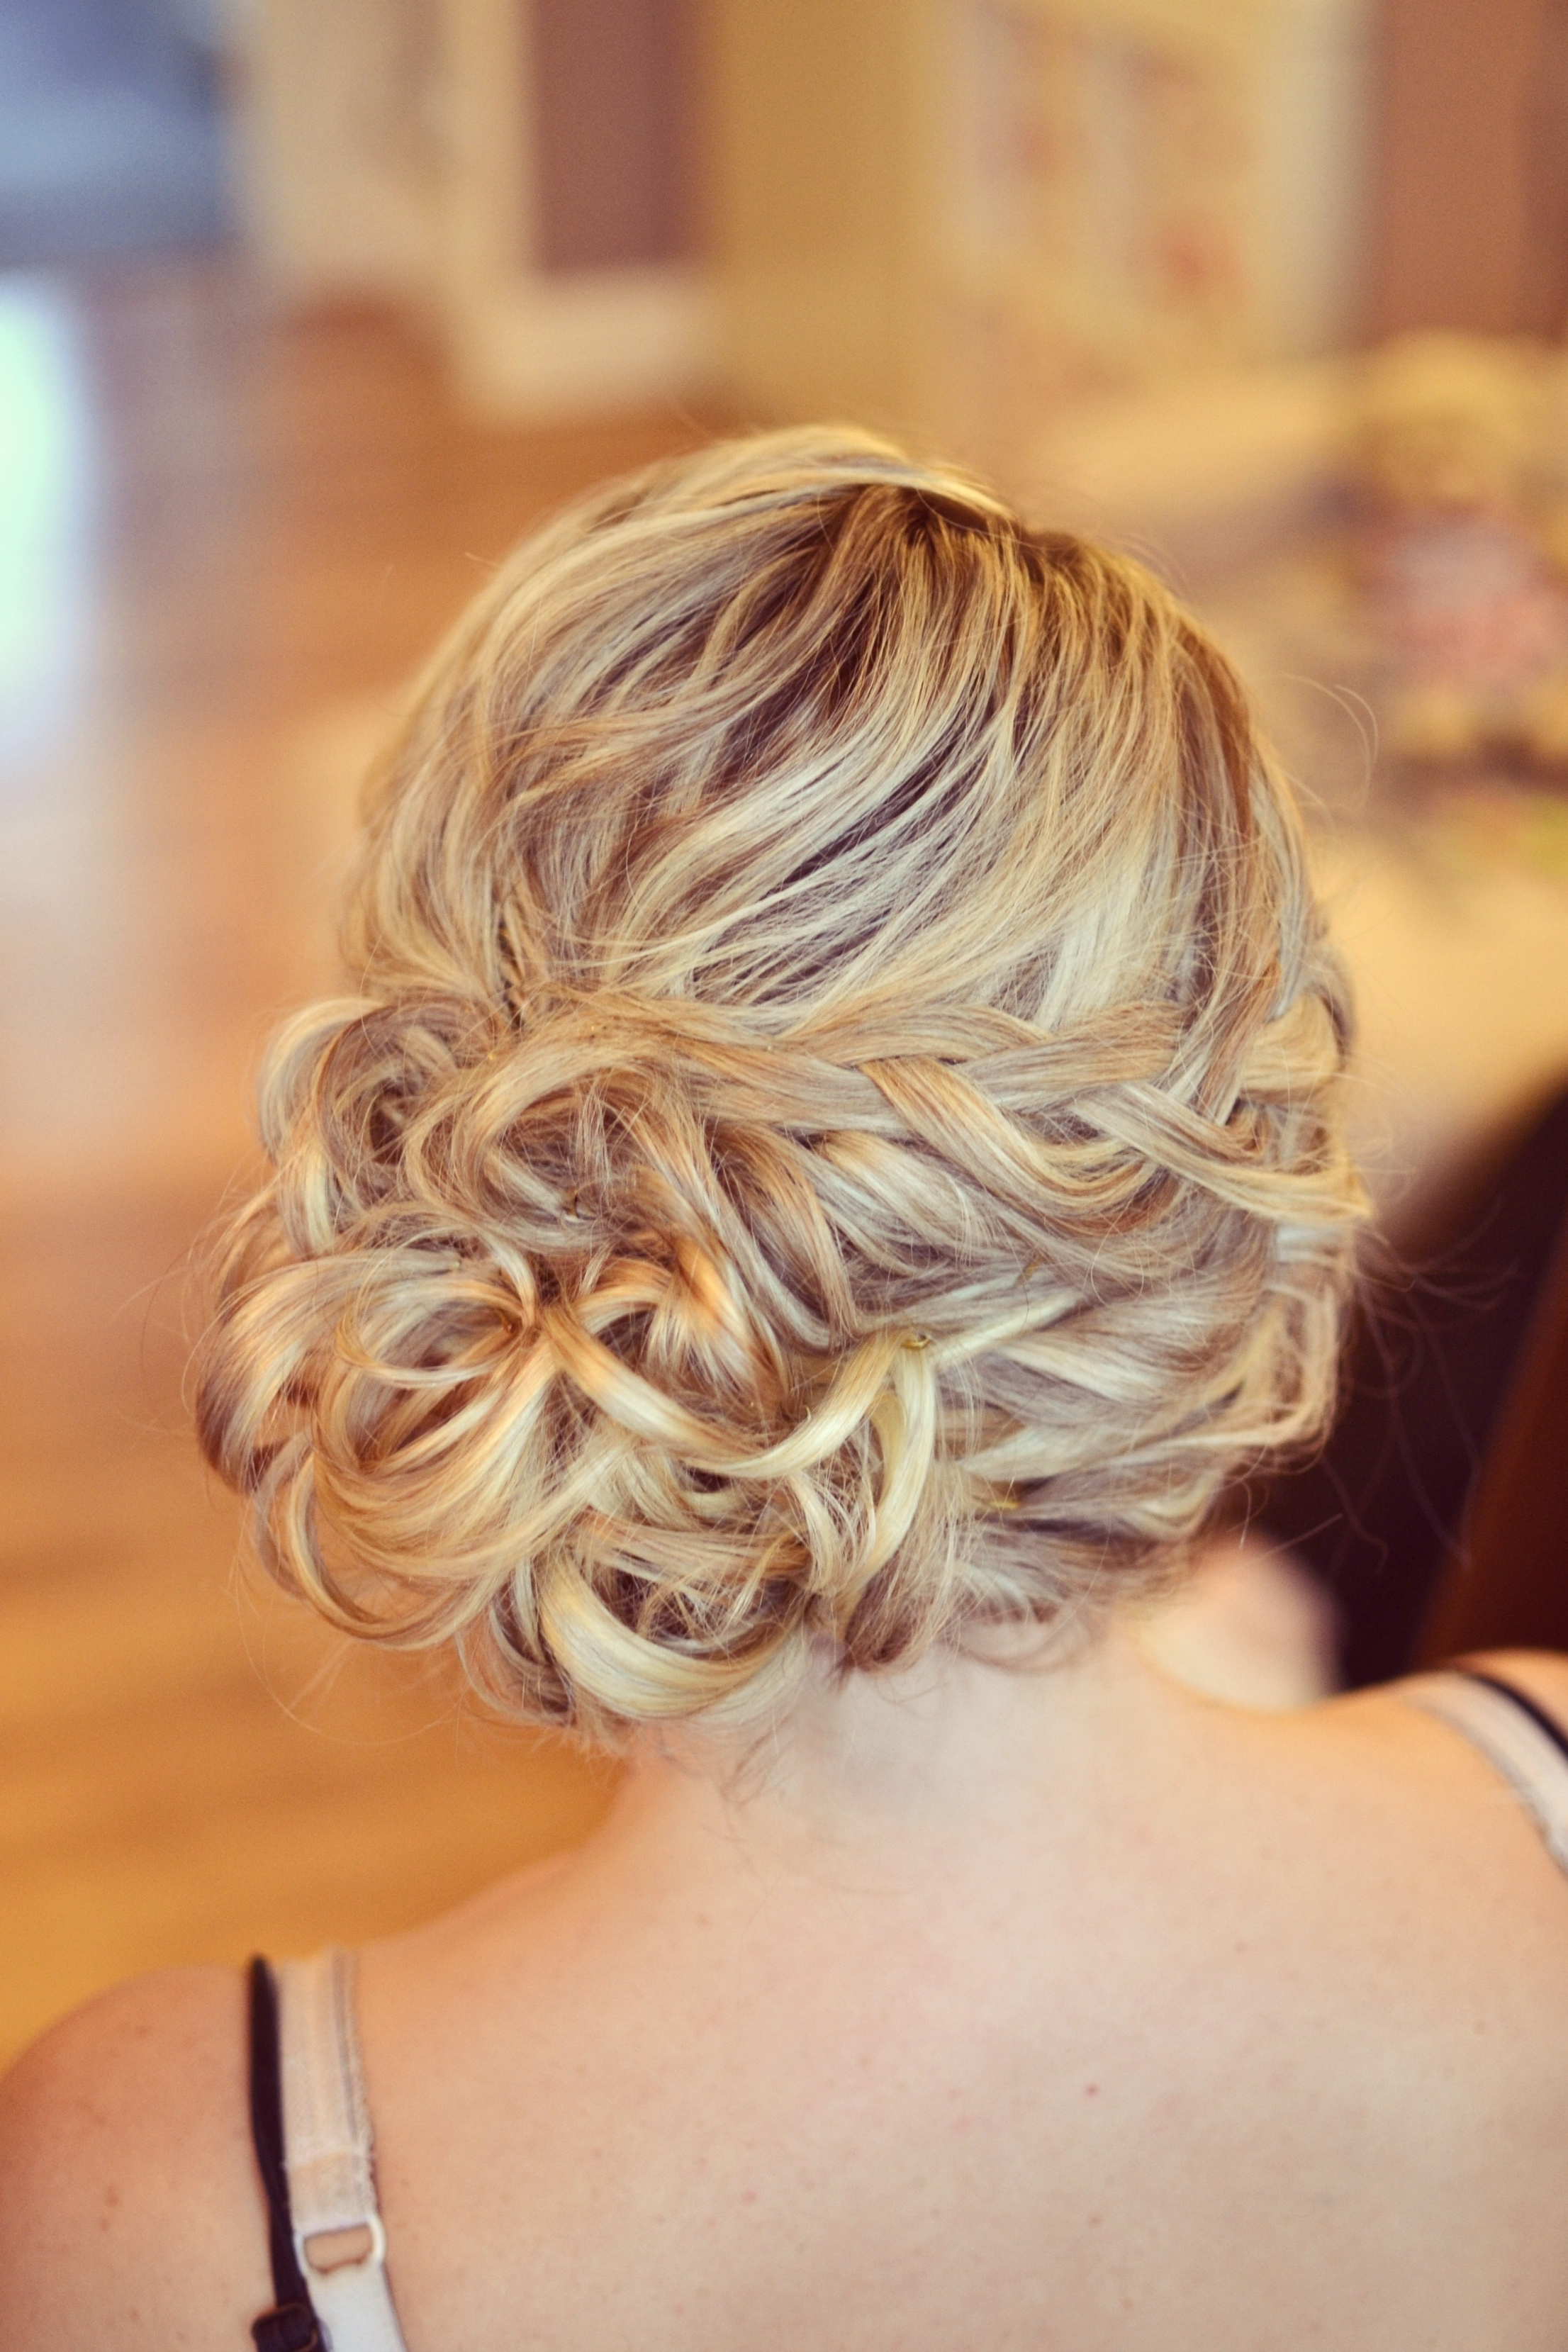 Captivating Wedding Hairstyles Low Side Bun For Your Wedding Hair Inside Preferred Plaits Bun Wedding Hairstyles (View 6 of 15)